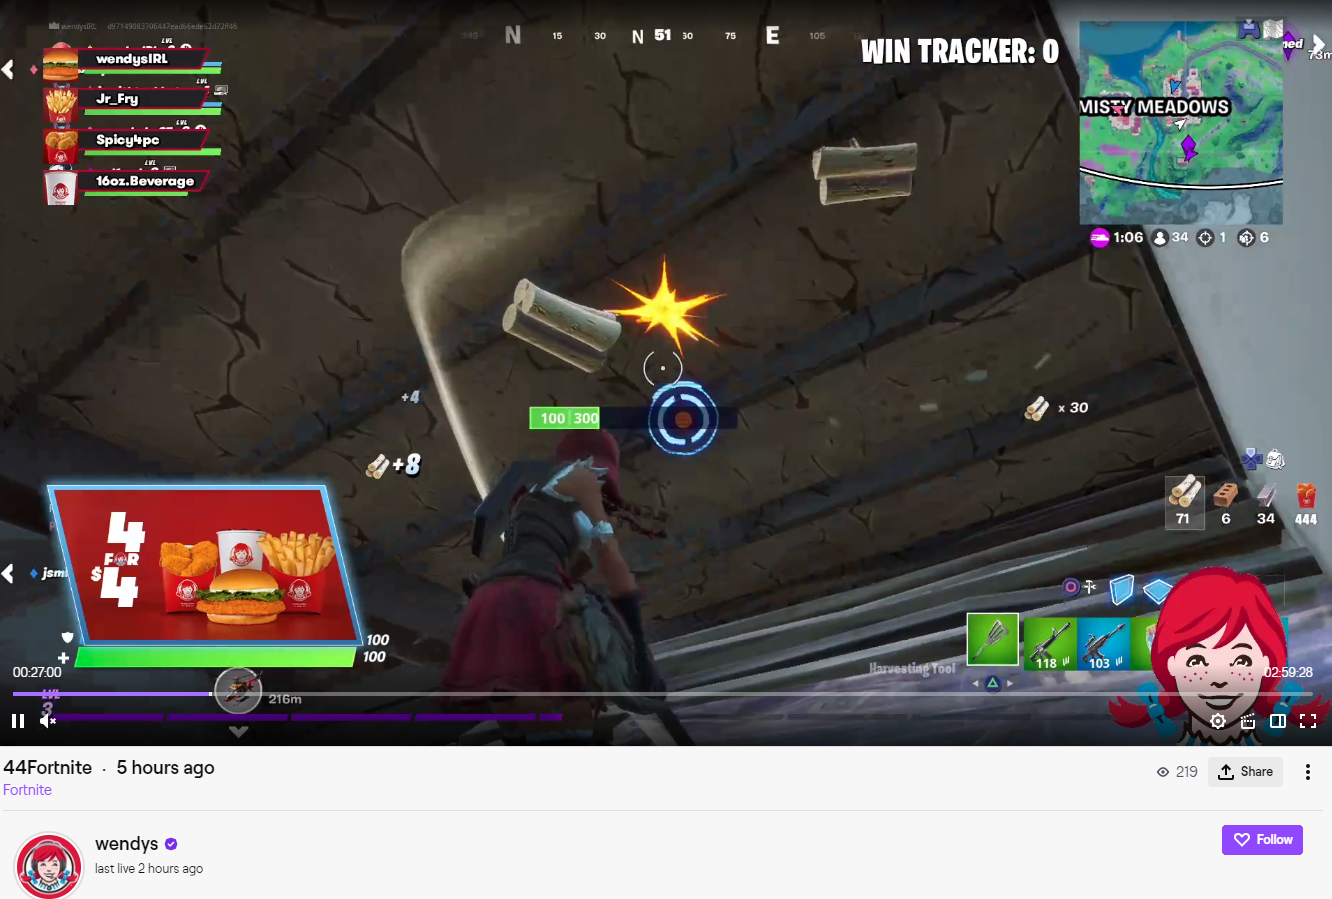 wendys fortnite on twitch